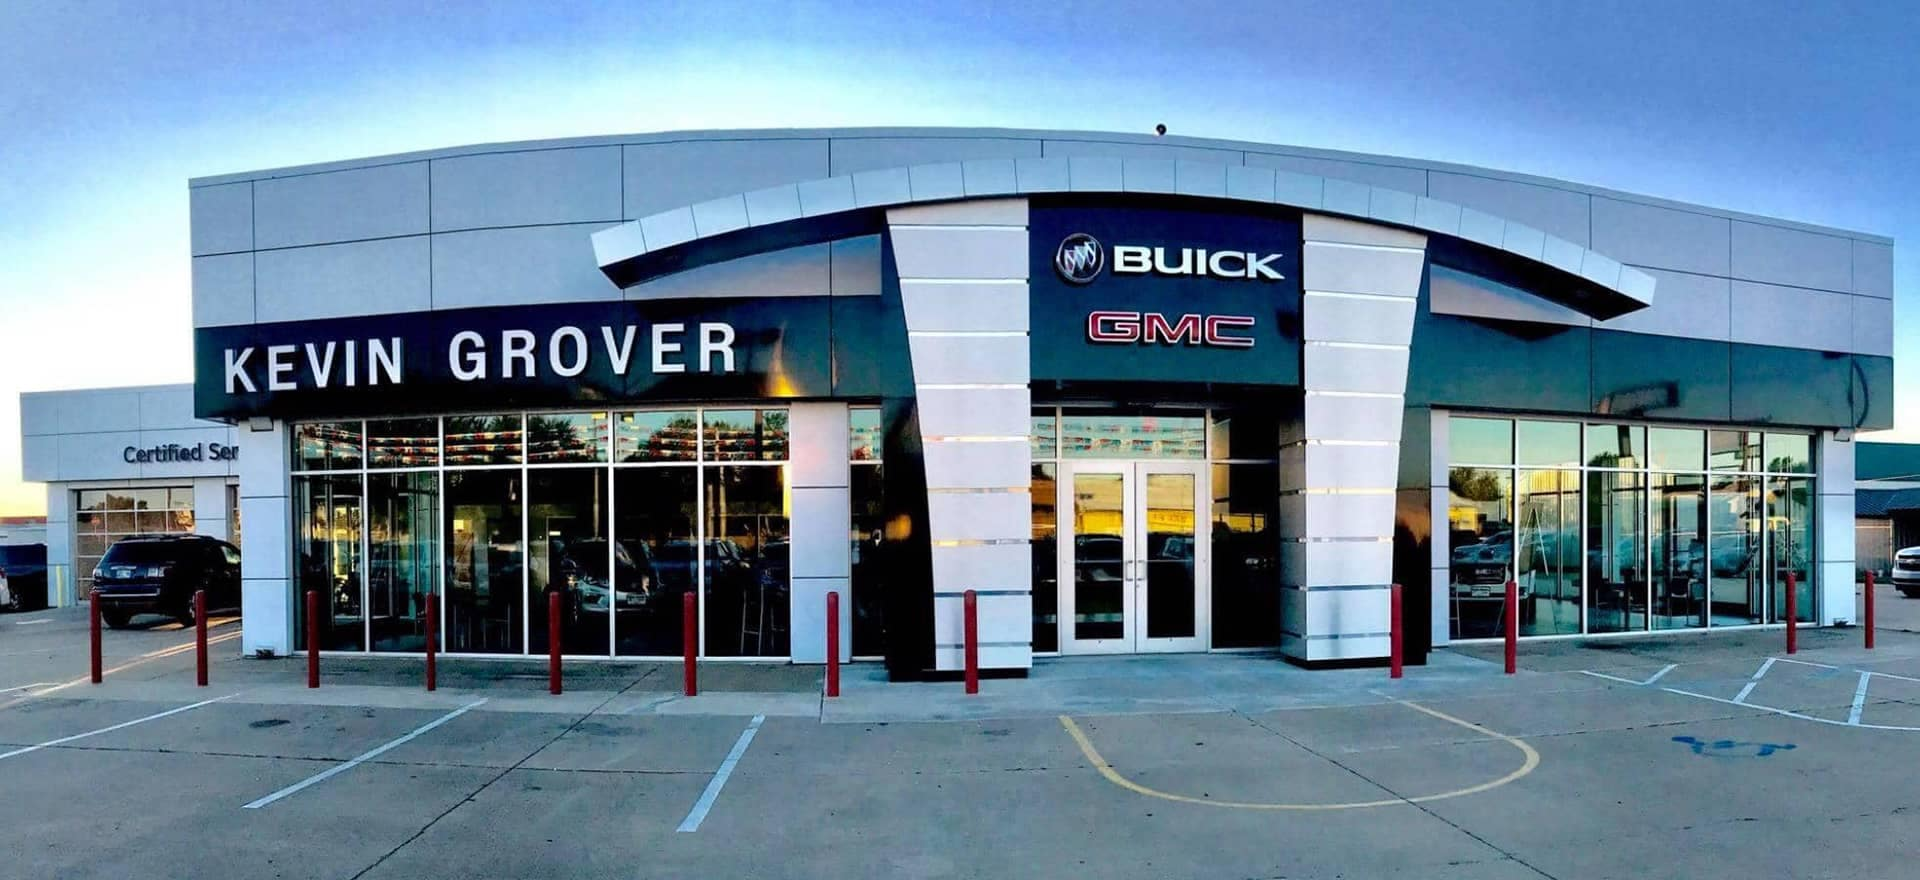 Kevin Grover Buick GMC Dealership Image